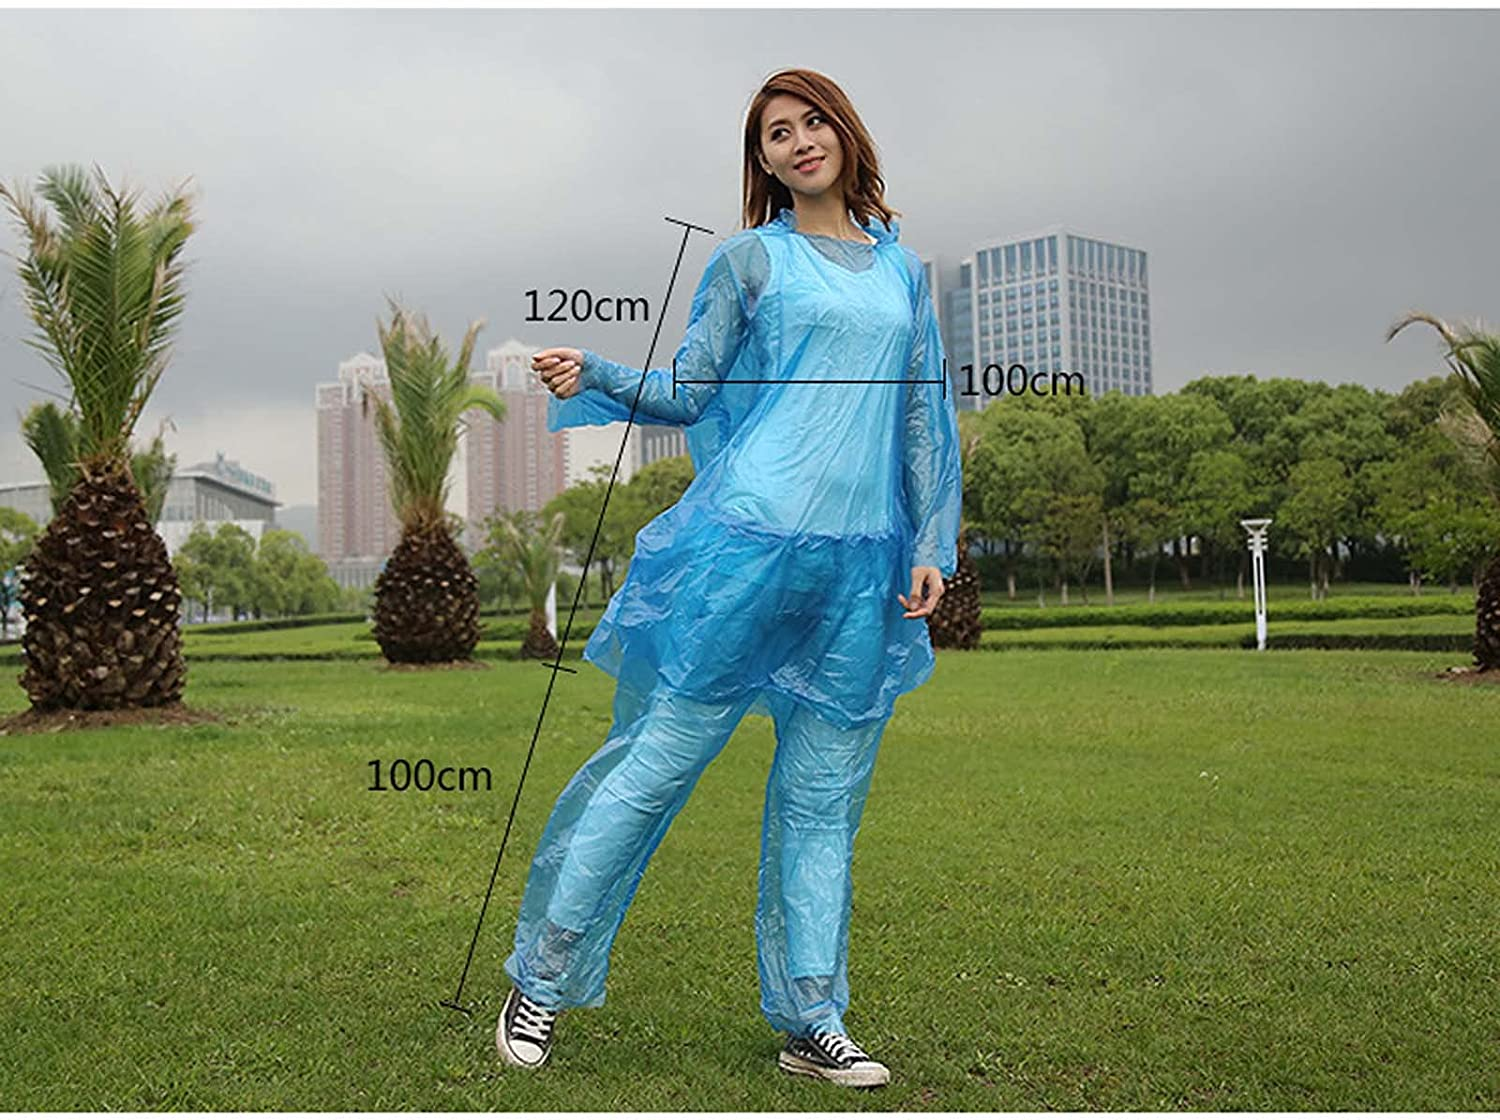 FHGH 2PCS Transparent Split Raincoat, PE Thicken Disposable Hooded Rainsuit, Unisex, for Cycling/Camping/Hiking,Blue,Medium